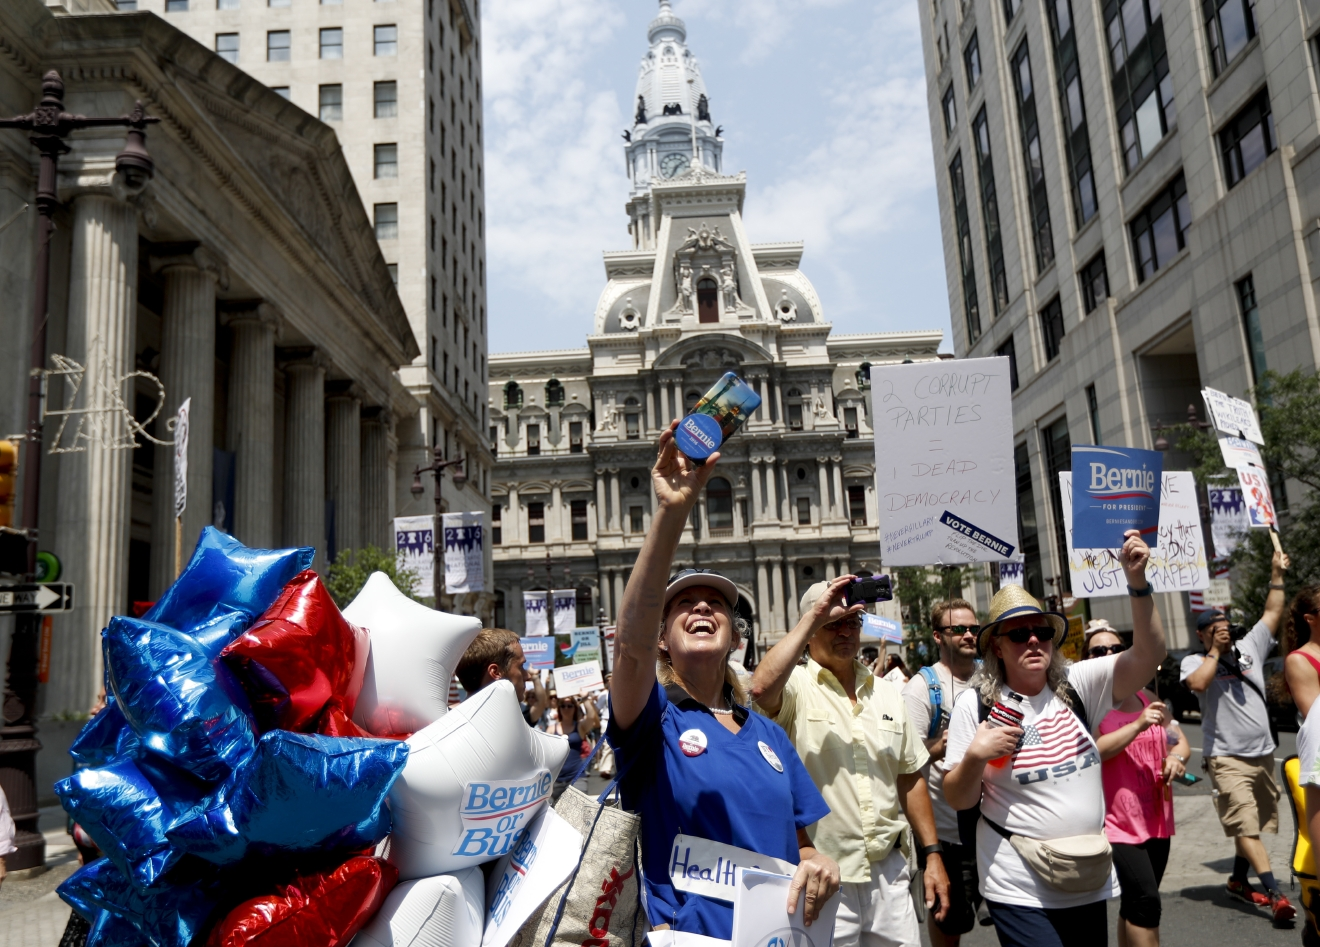 Demonstrators make their way around downtown, Monday, July 25, 2016, in Philadelphia, during the first day of the Democratic National Convention. (AP Photo/John Minchillo)